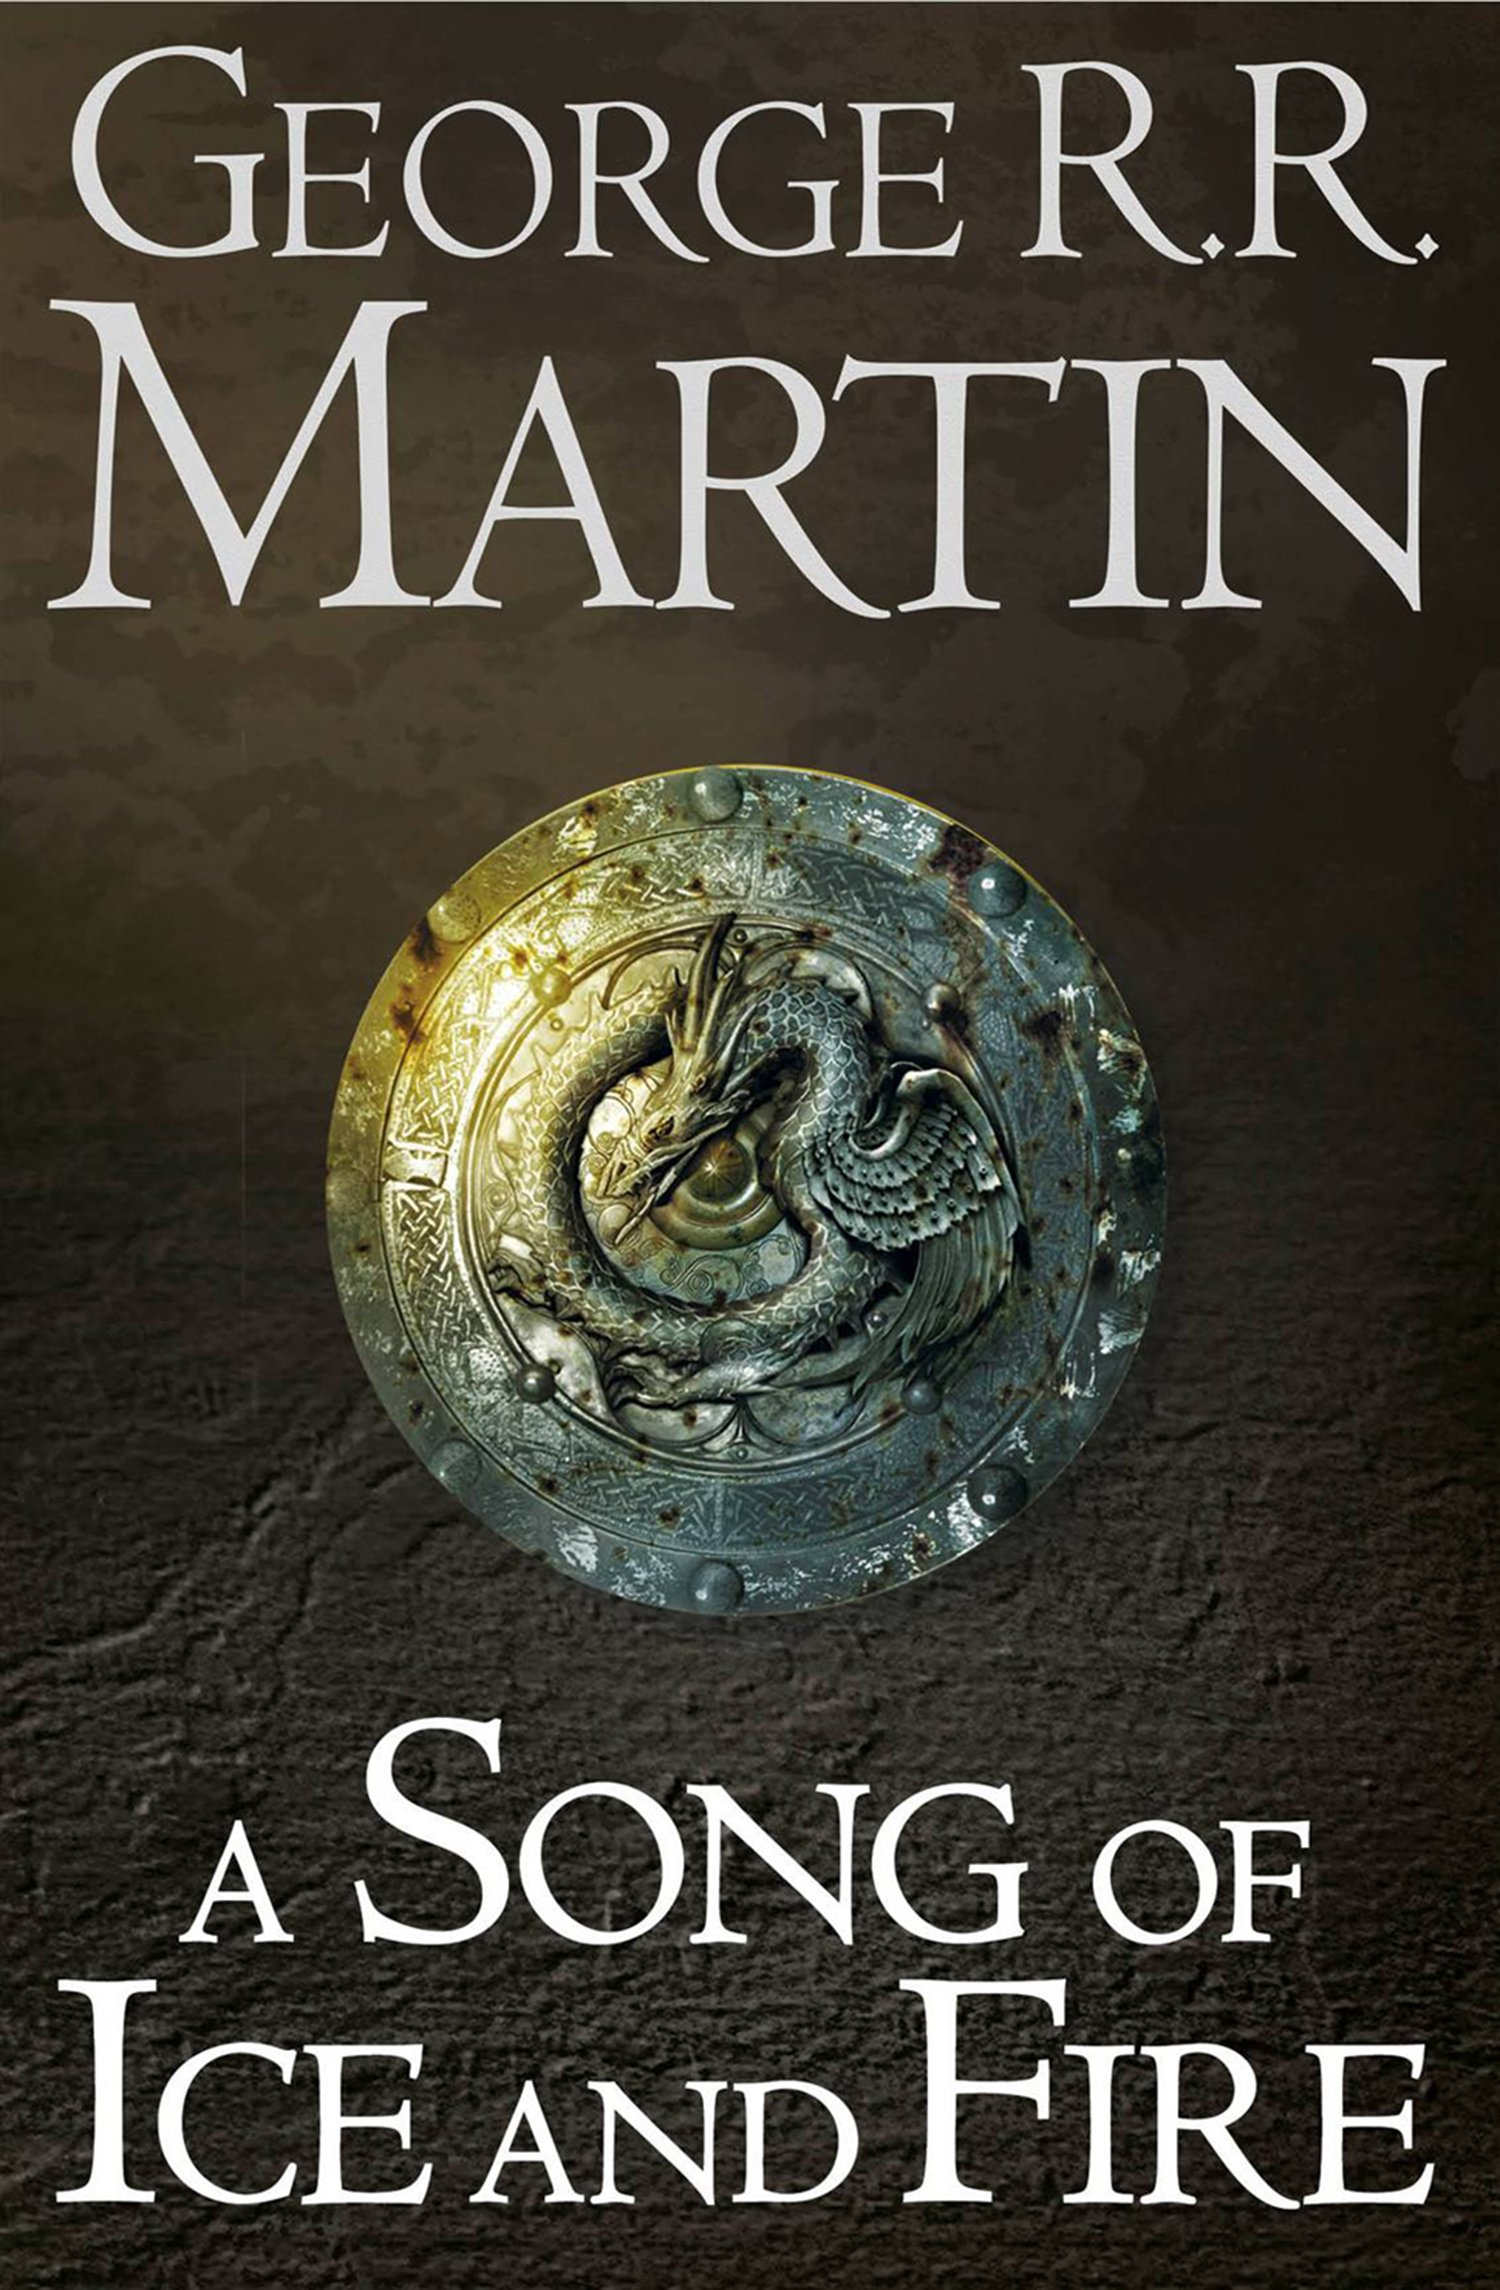 A Game of Thrones: The Story Continues Books 1-5: A Game of Thrones, A  Clash of Kings, A Storm of Swords, A Feast for Crows, A Dance with Dragons  (A